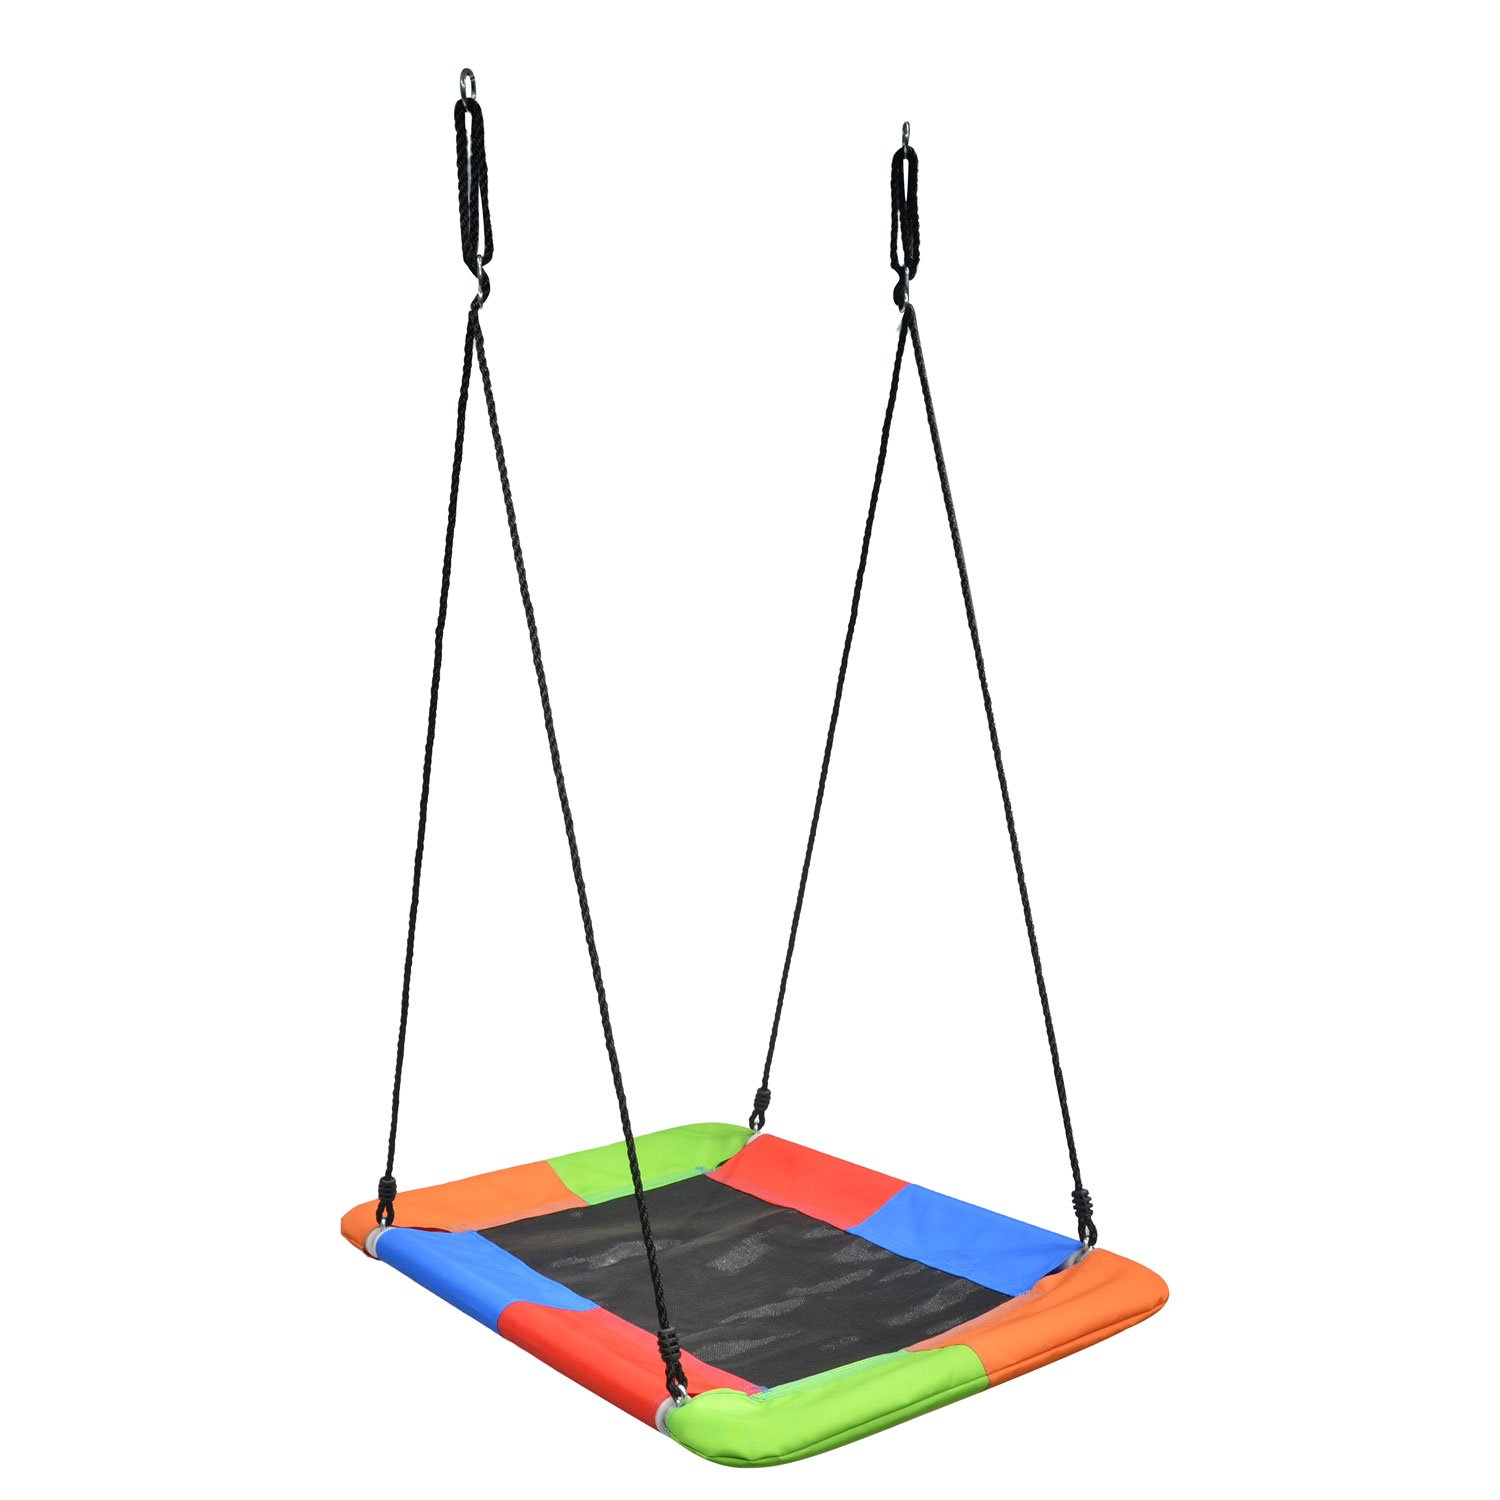 Swinging Monkey Giant Mat Platform Swing in Vibrant Rainbow Tree Swing 40'' x 30'' 400 lb Weight Capacity Waterproof Fabric Reinforced Steel Frame No Hassle Adjustable Ropes Easy Install by Swinging Monkey Products